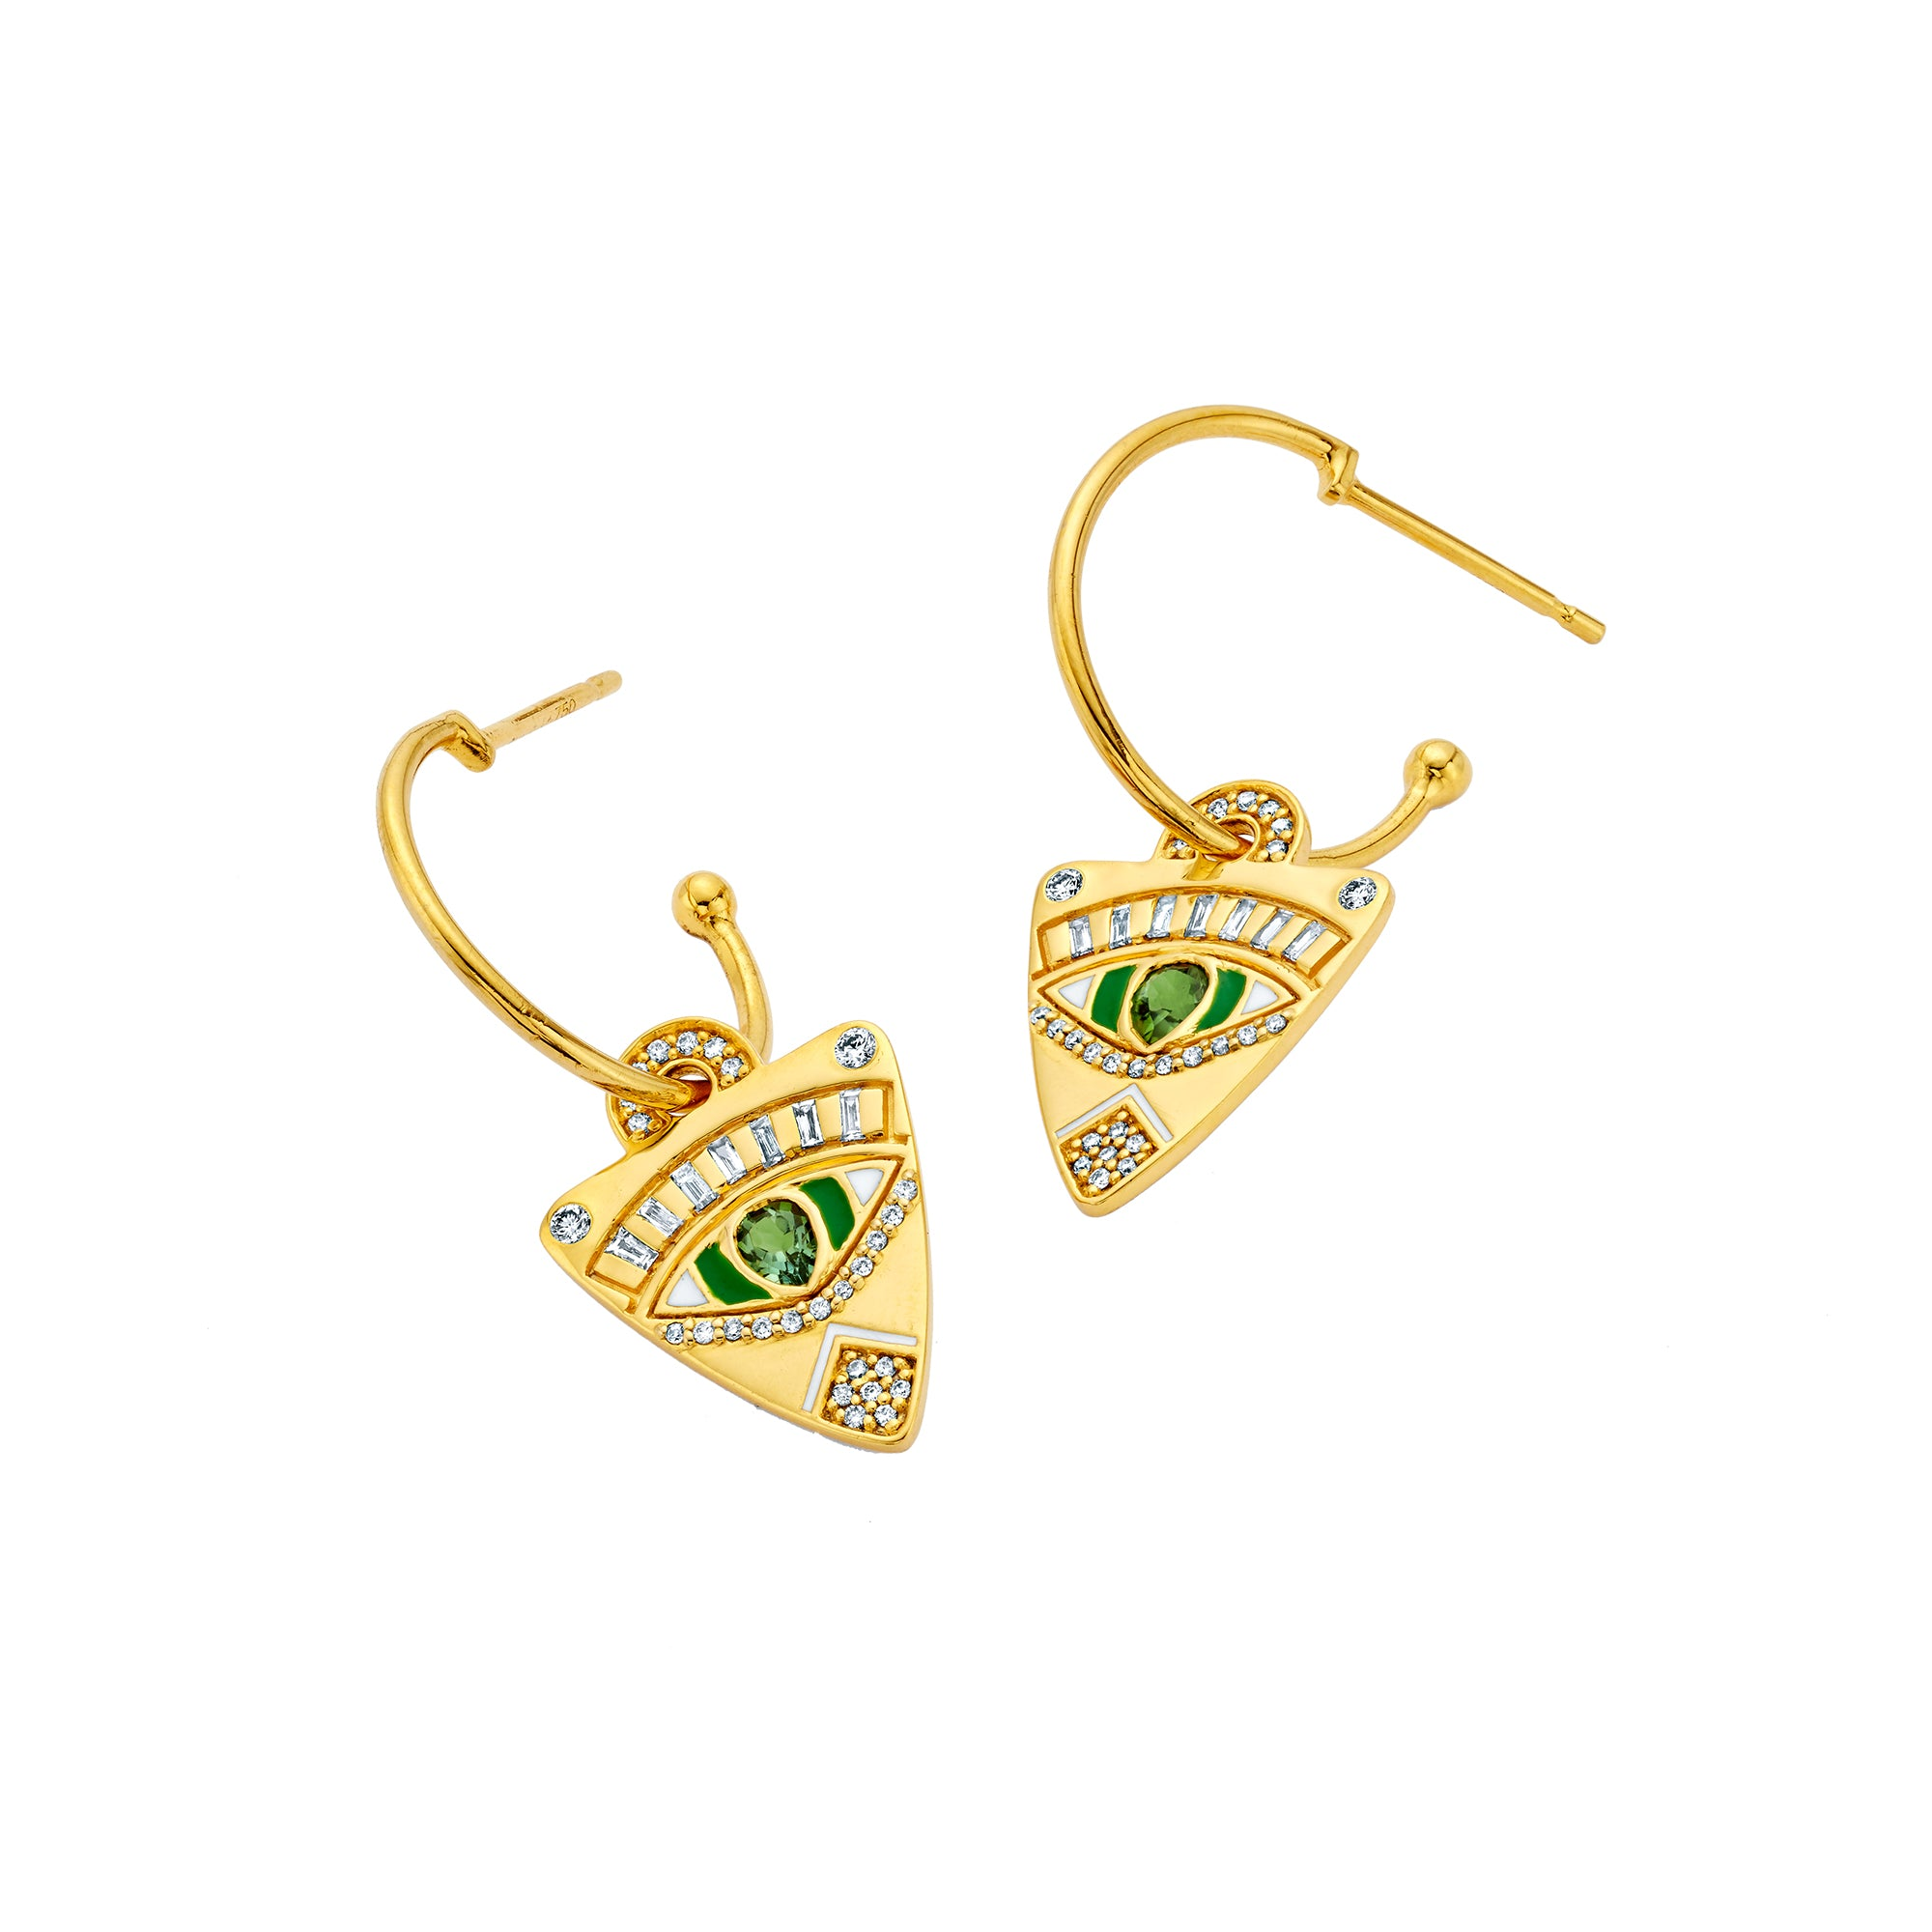 Gold Enamel Tourmaline & White Diamond Guitar Pick Hoop Earrings by Buddha Mama for Broken English Jewelry